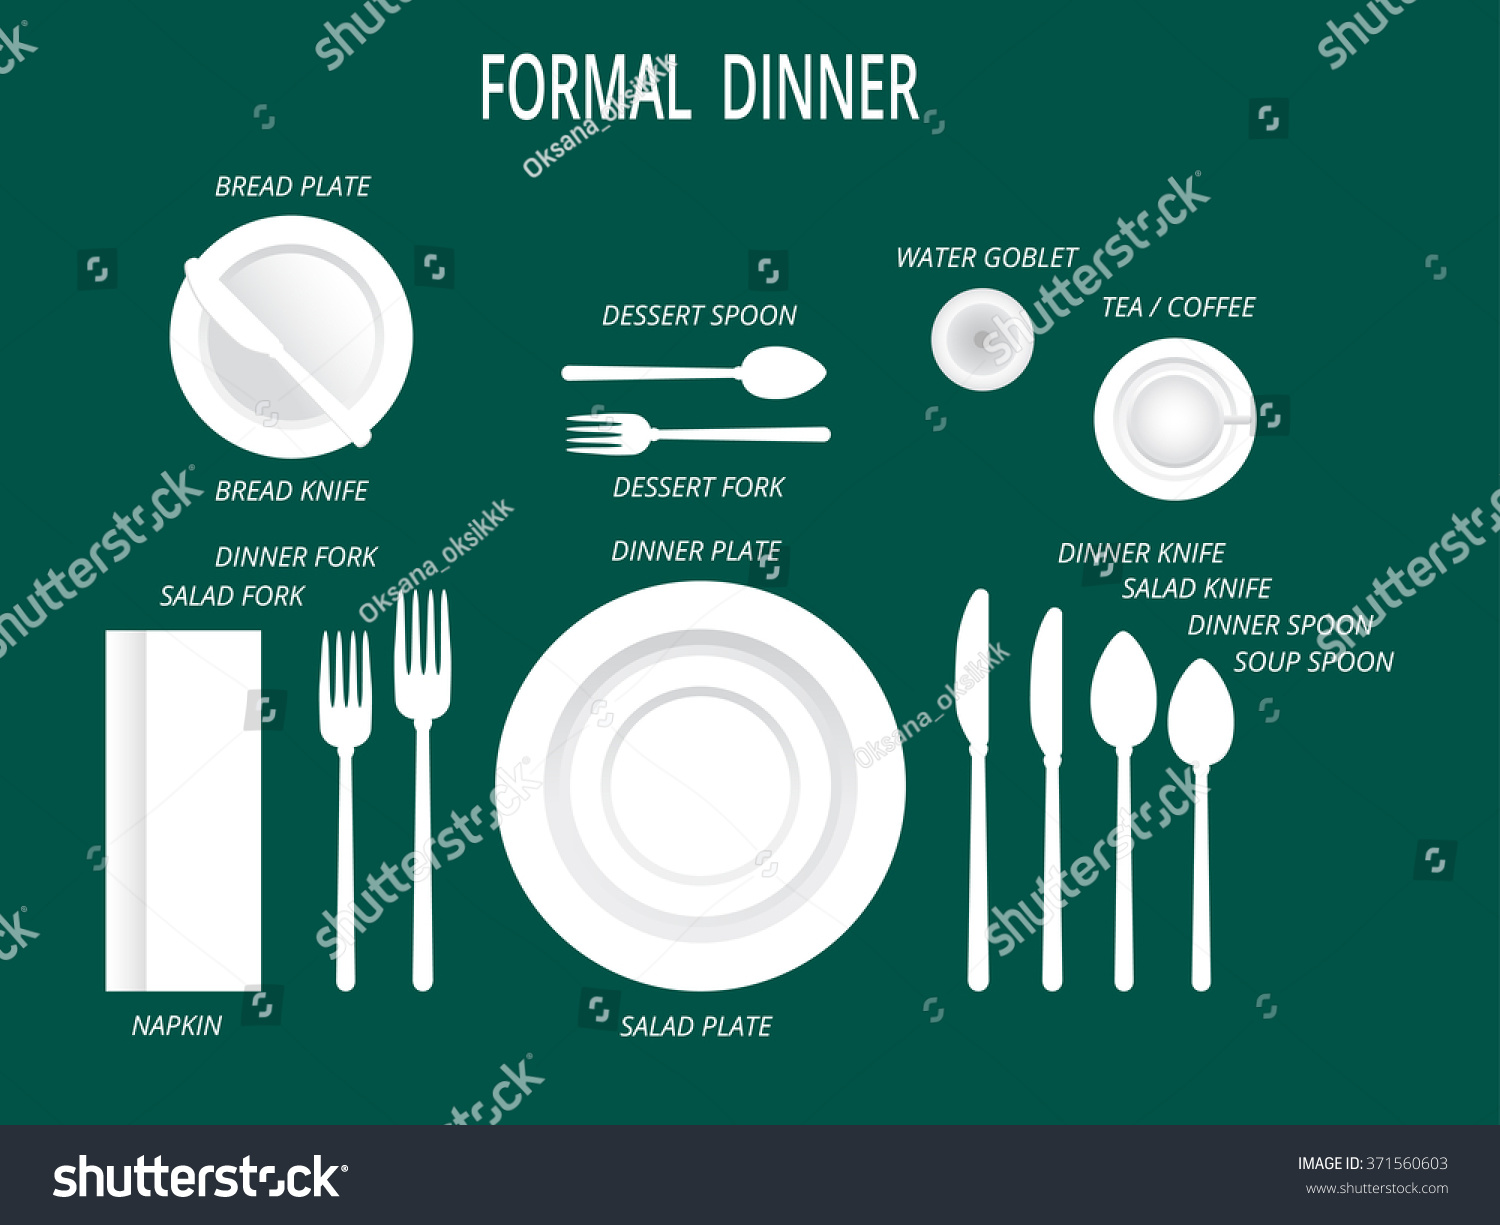 Setting A Dinner Table Place Setting Dinner Table  : stock vector formal dinner place settings dinner table set set for food and drink dinner set with text labels 371560603 from livebydesigns.us size 1500 x 1225 jpeg 307kB